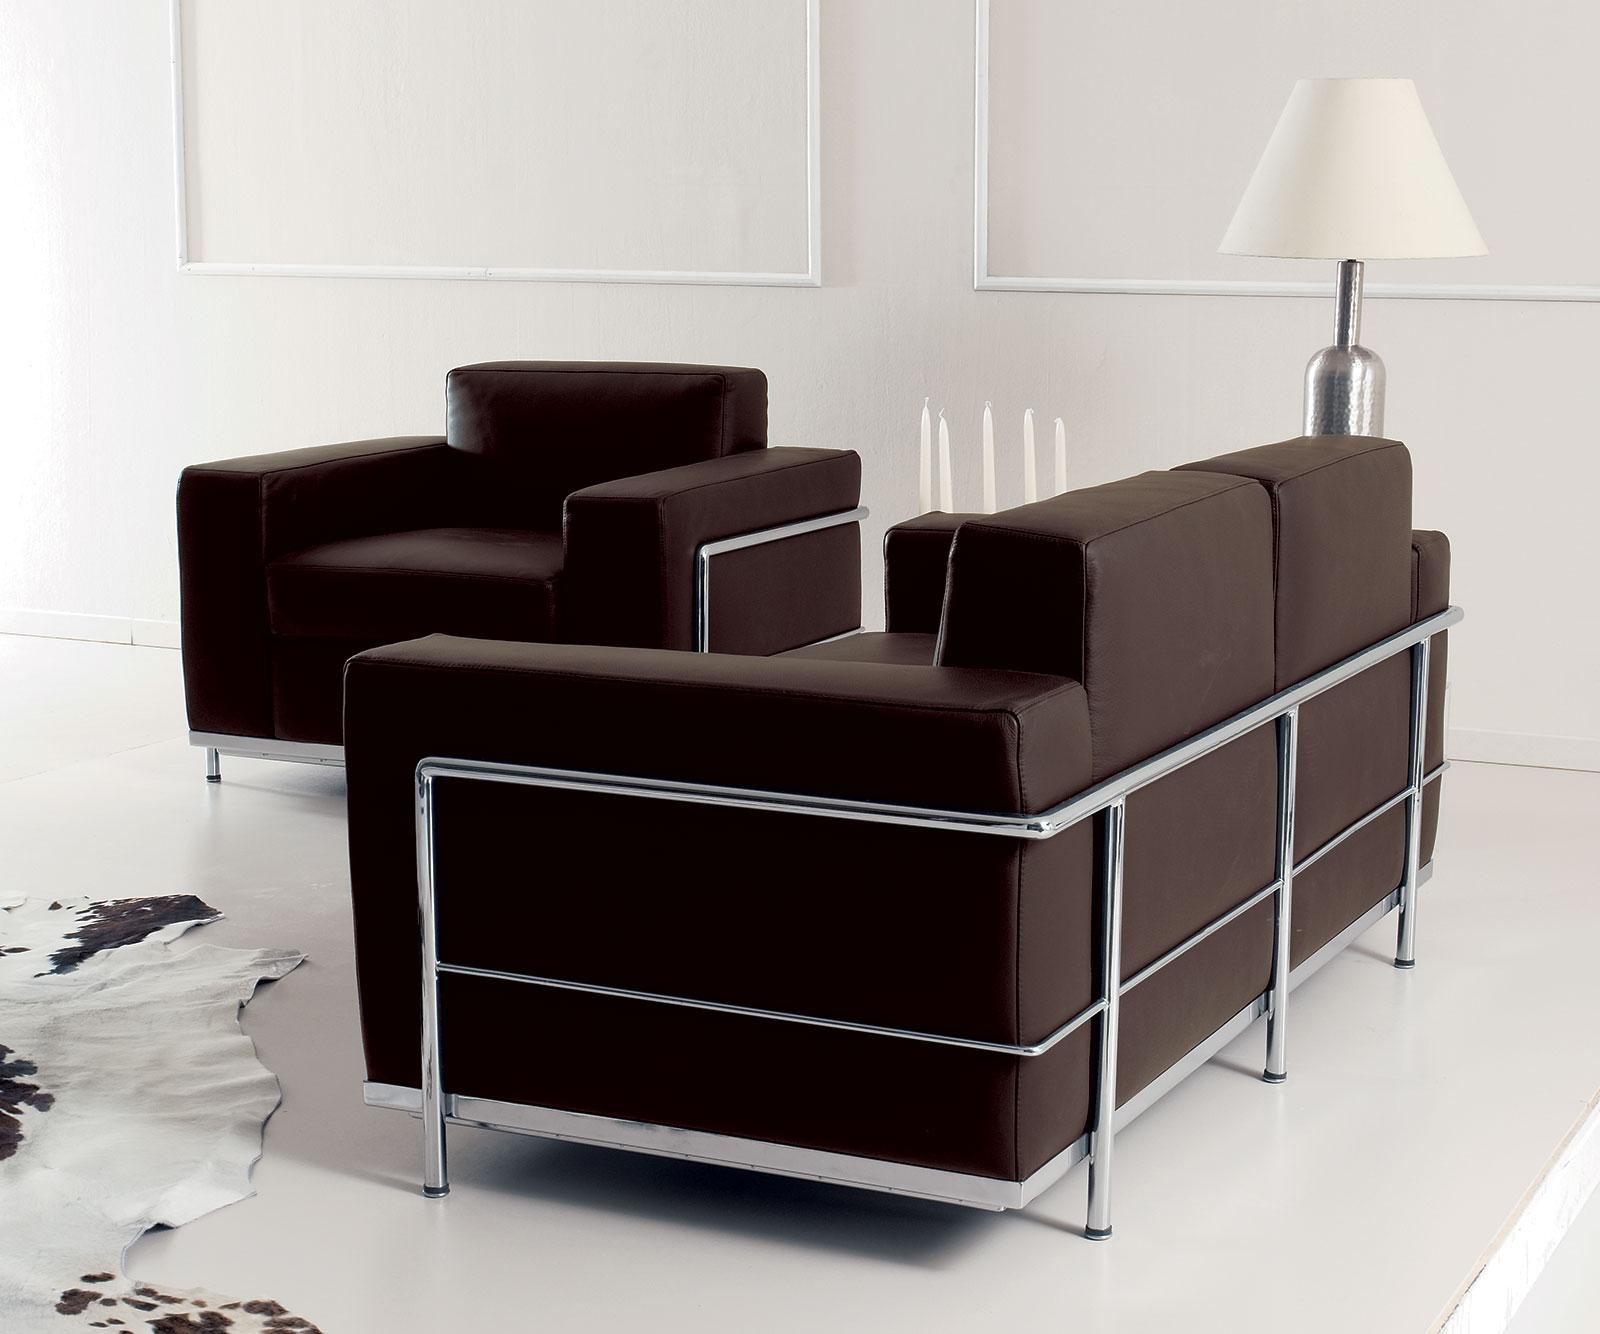 Cook 2 seater modern leather sofa shop online italy for Home element online furniture reviews